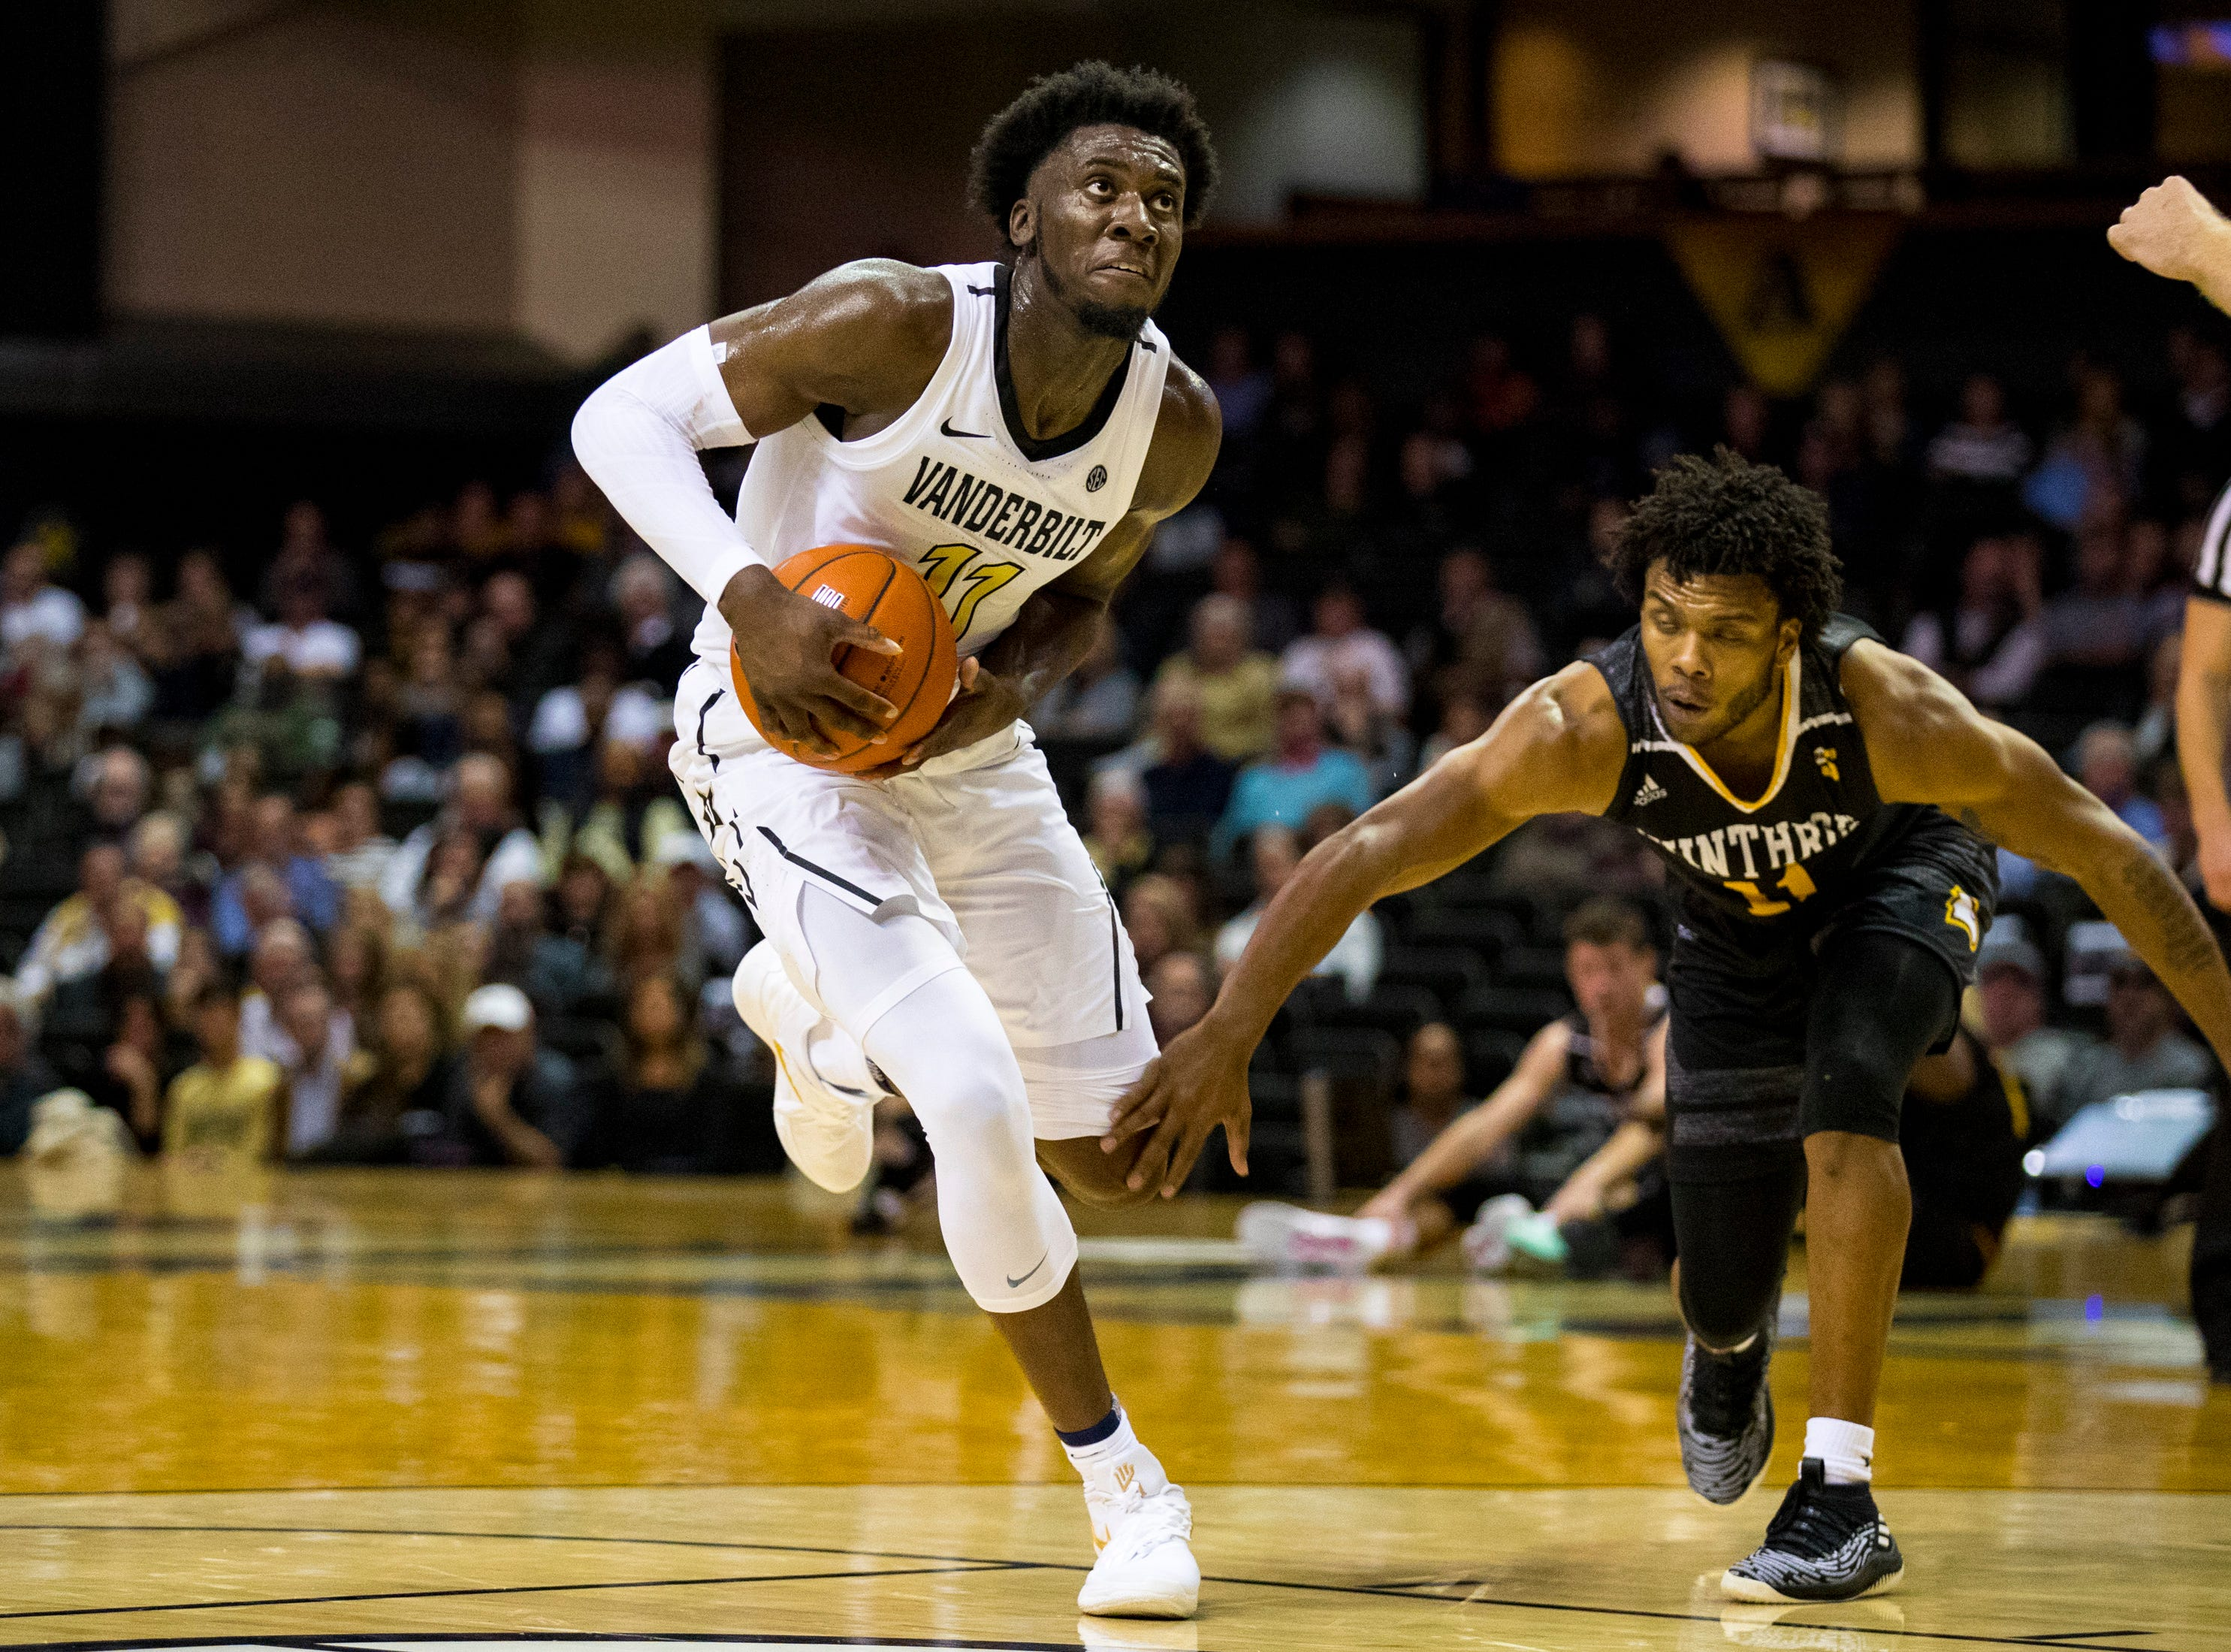 Vanderbilt's Simsola Shittu (11) looks towards the basket during Vanderbilt's game against Winthrop at Memorial Gymnasium in Nashville on Tuesday, Nov. 6, 2018.